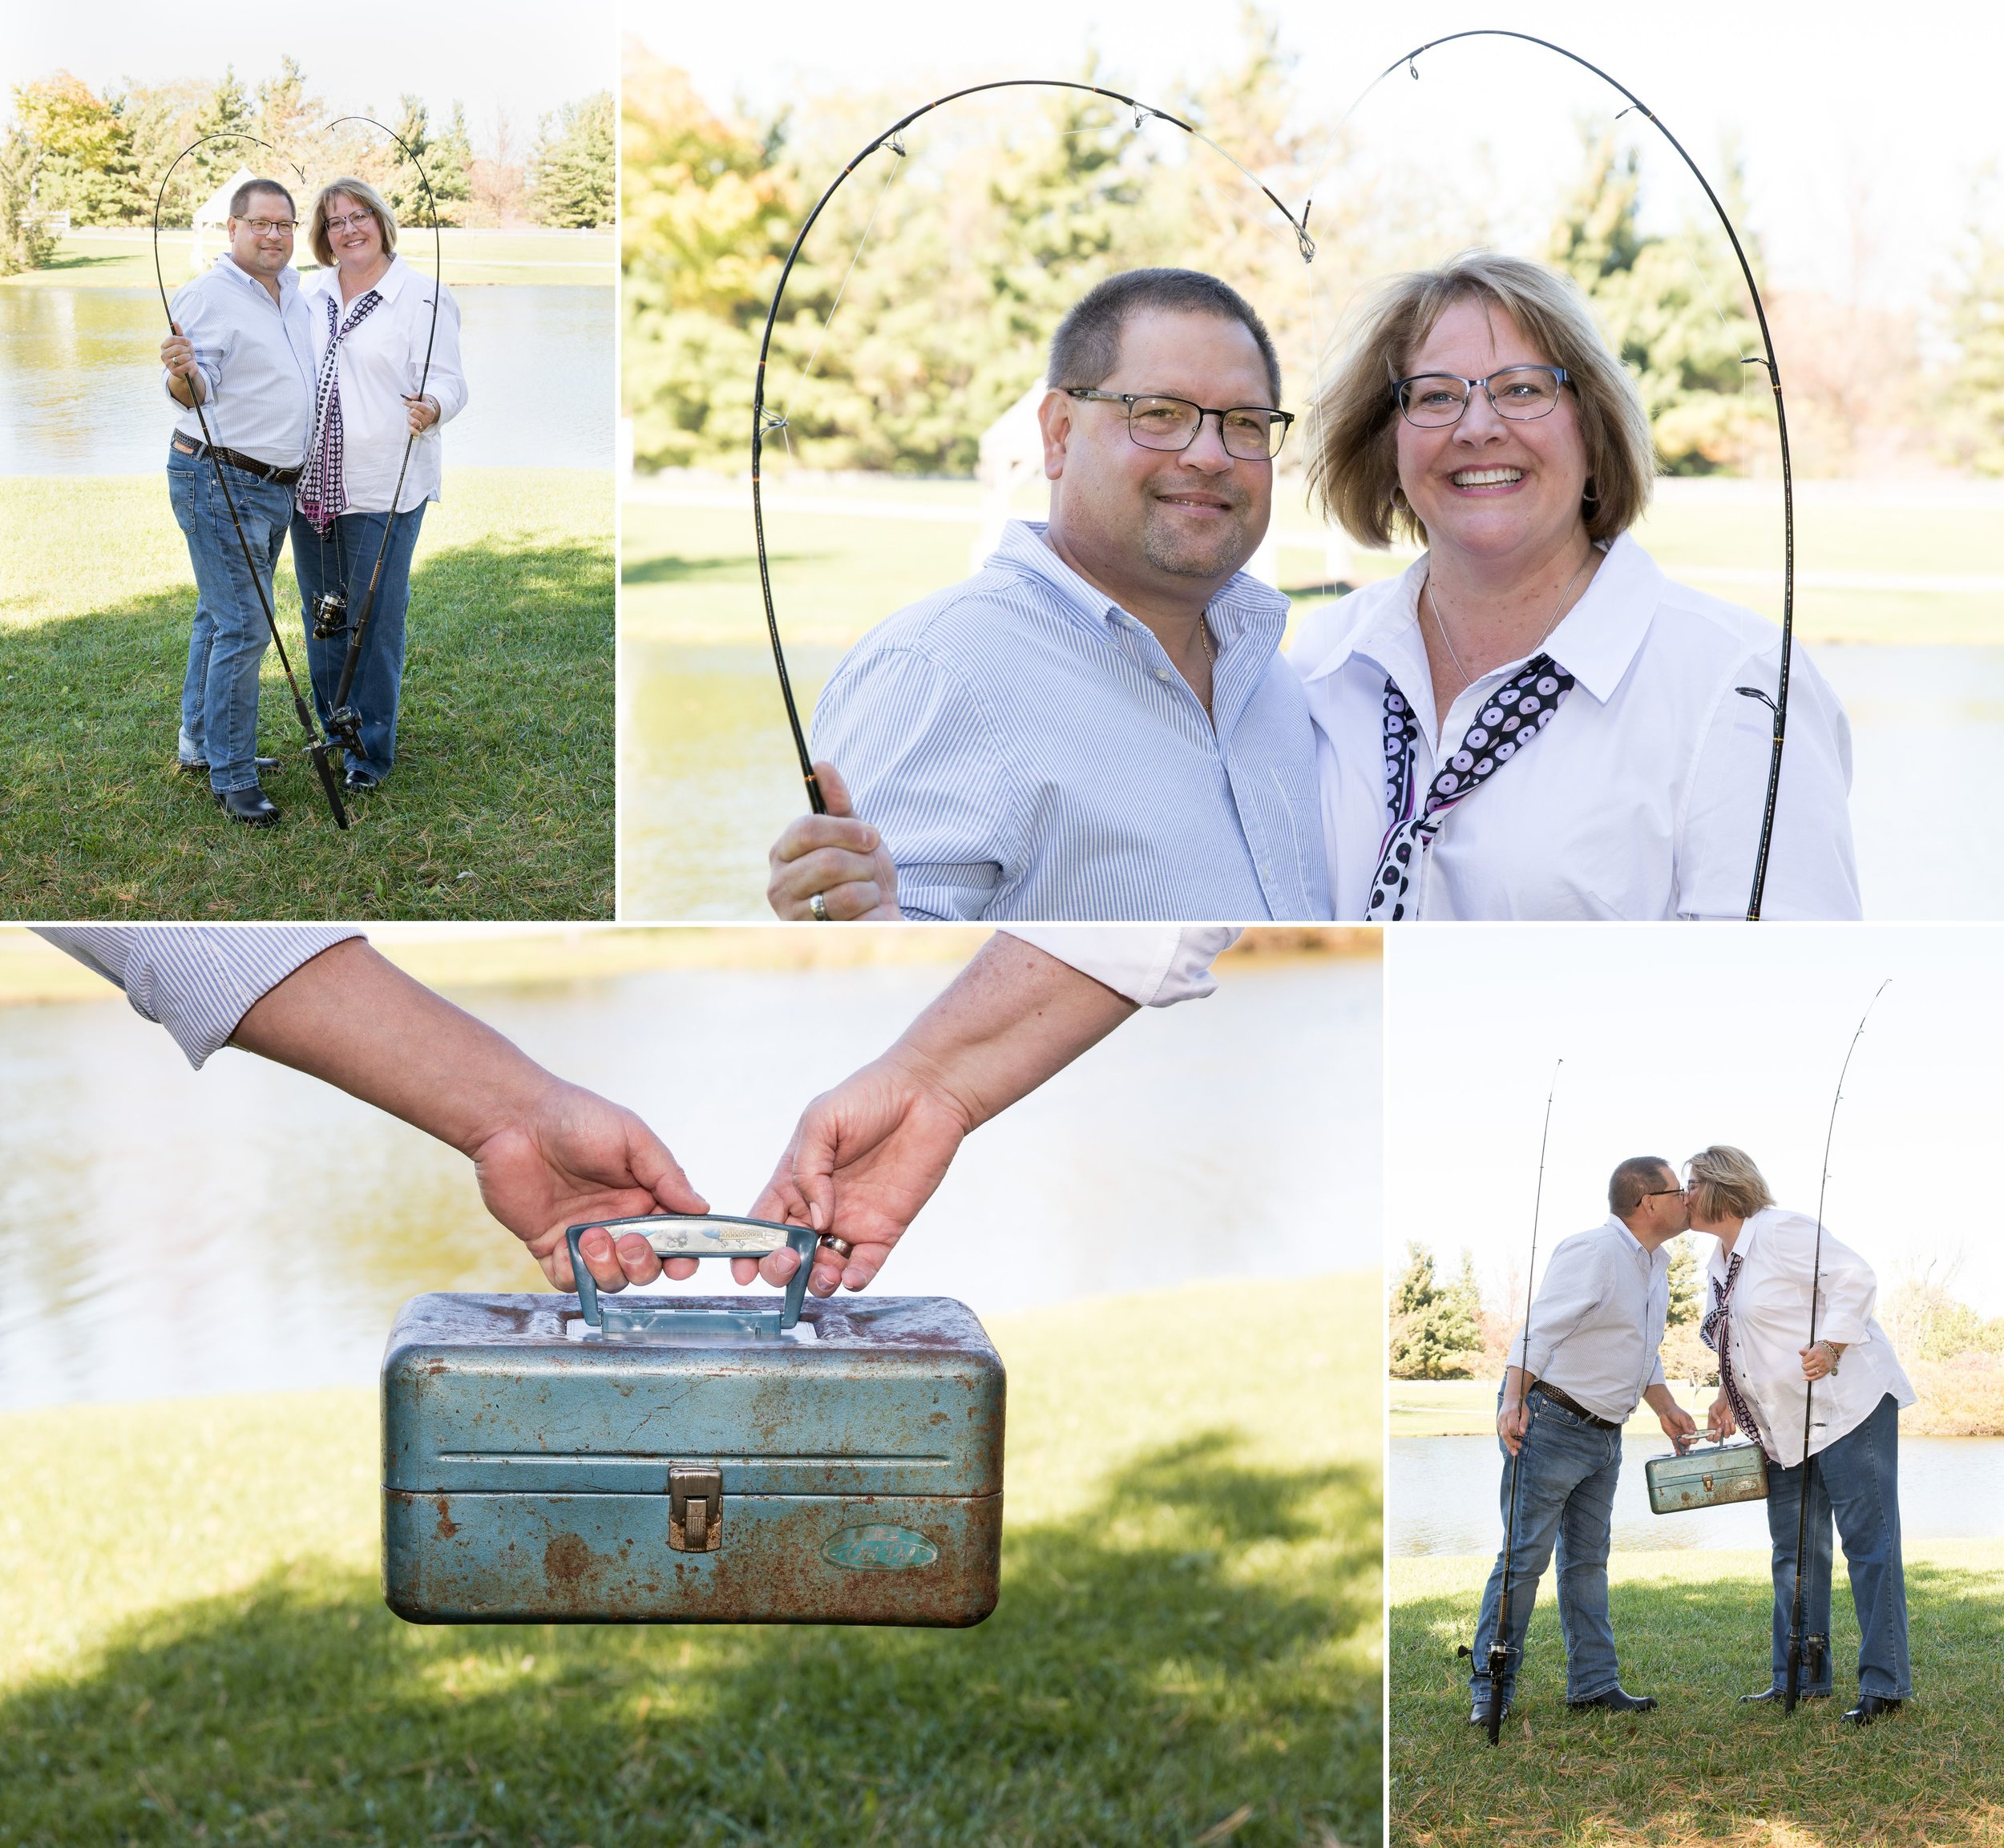 Homestead-Park-Hilliard-Columbus-Ohio-Engagment-Session-Fishing-Theme-Muschlitz-Photography-003.JPG